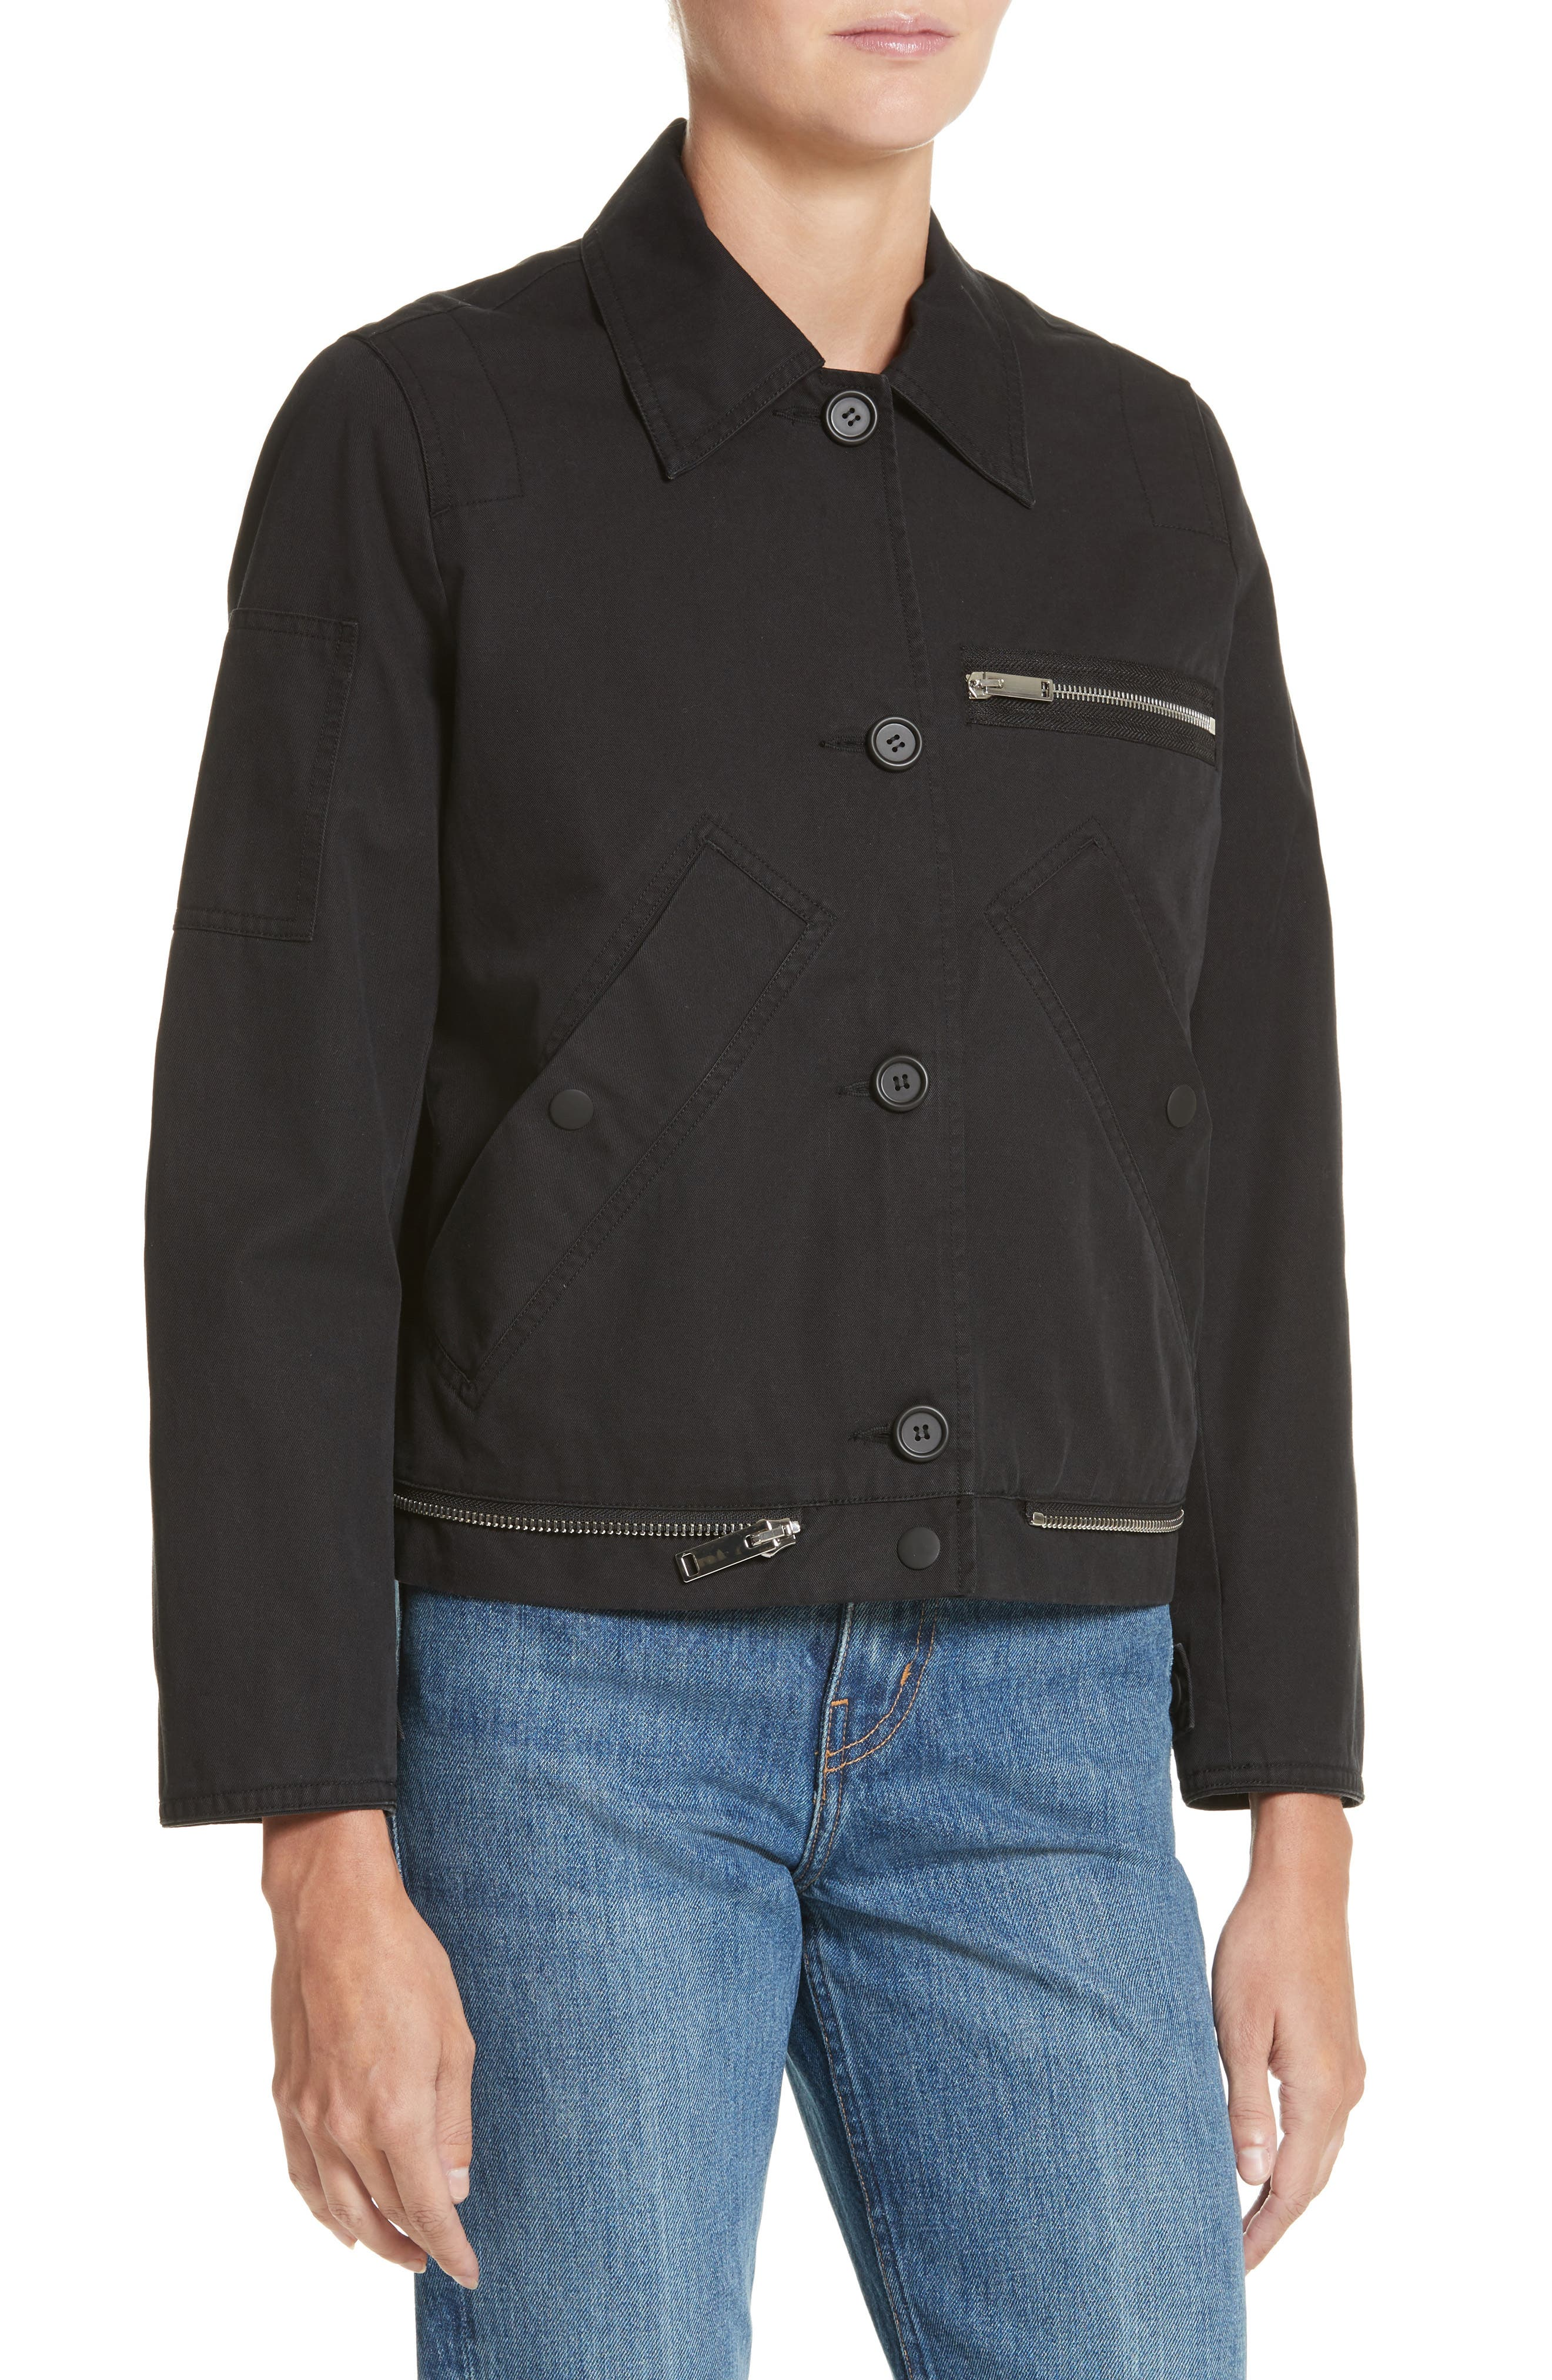 PSWL Washed Cotton Military Jacket,                             Alternate thumbnail 4, color,                             Black